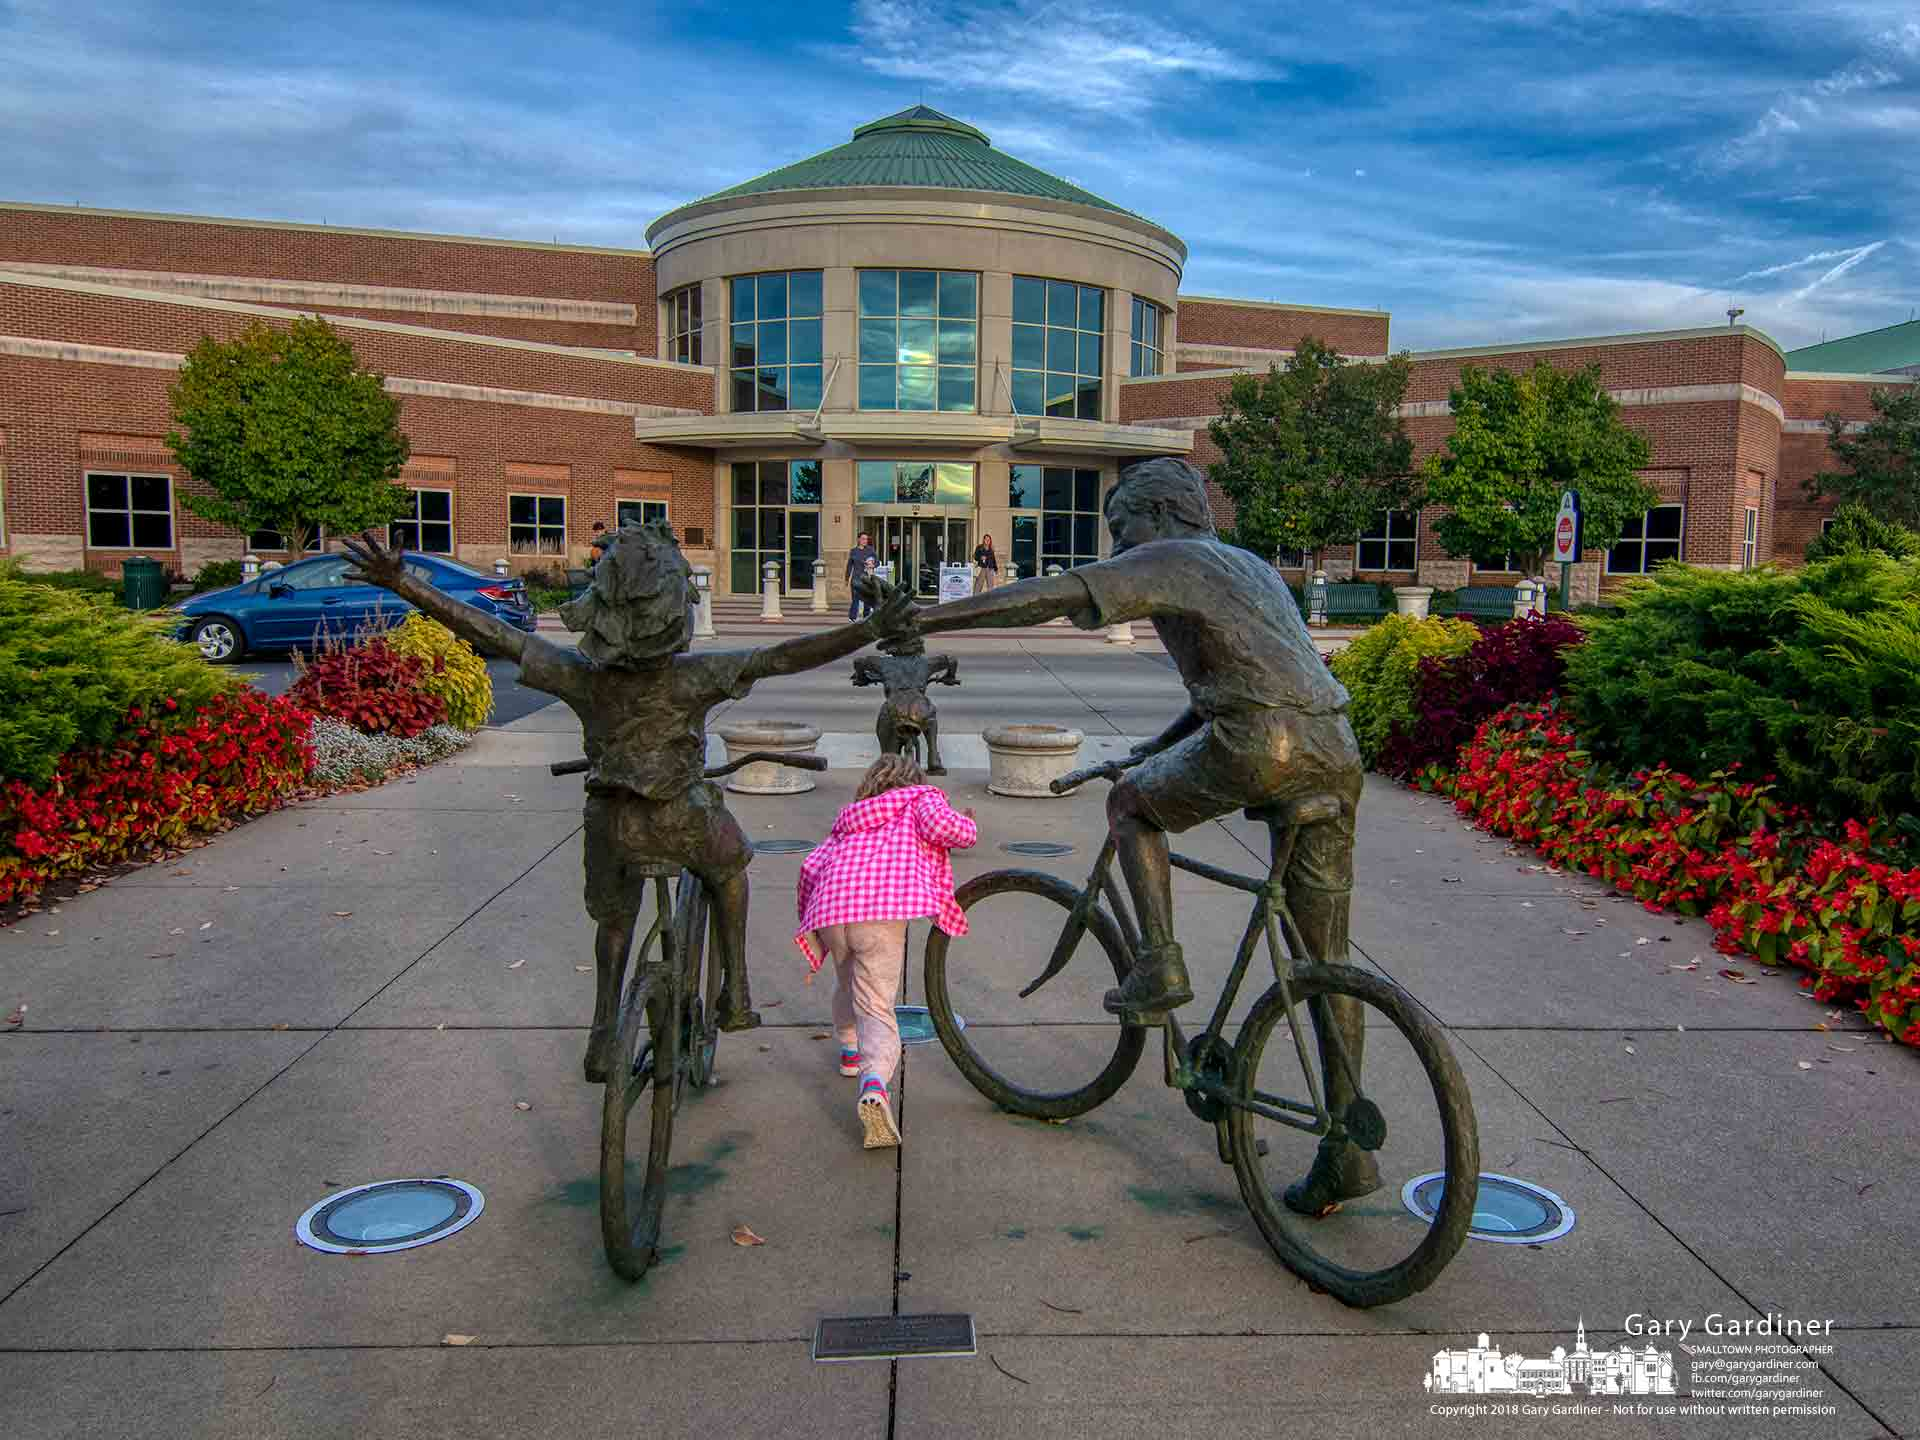 A young girl runs beneath the outstreched arms of a bicycling sculpture at th eentrance to the Westerville Community Center. My Final Photo for Oct. 16, 2018.